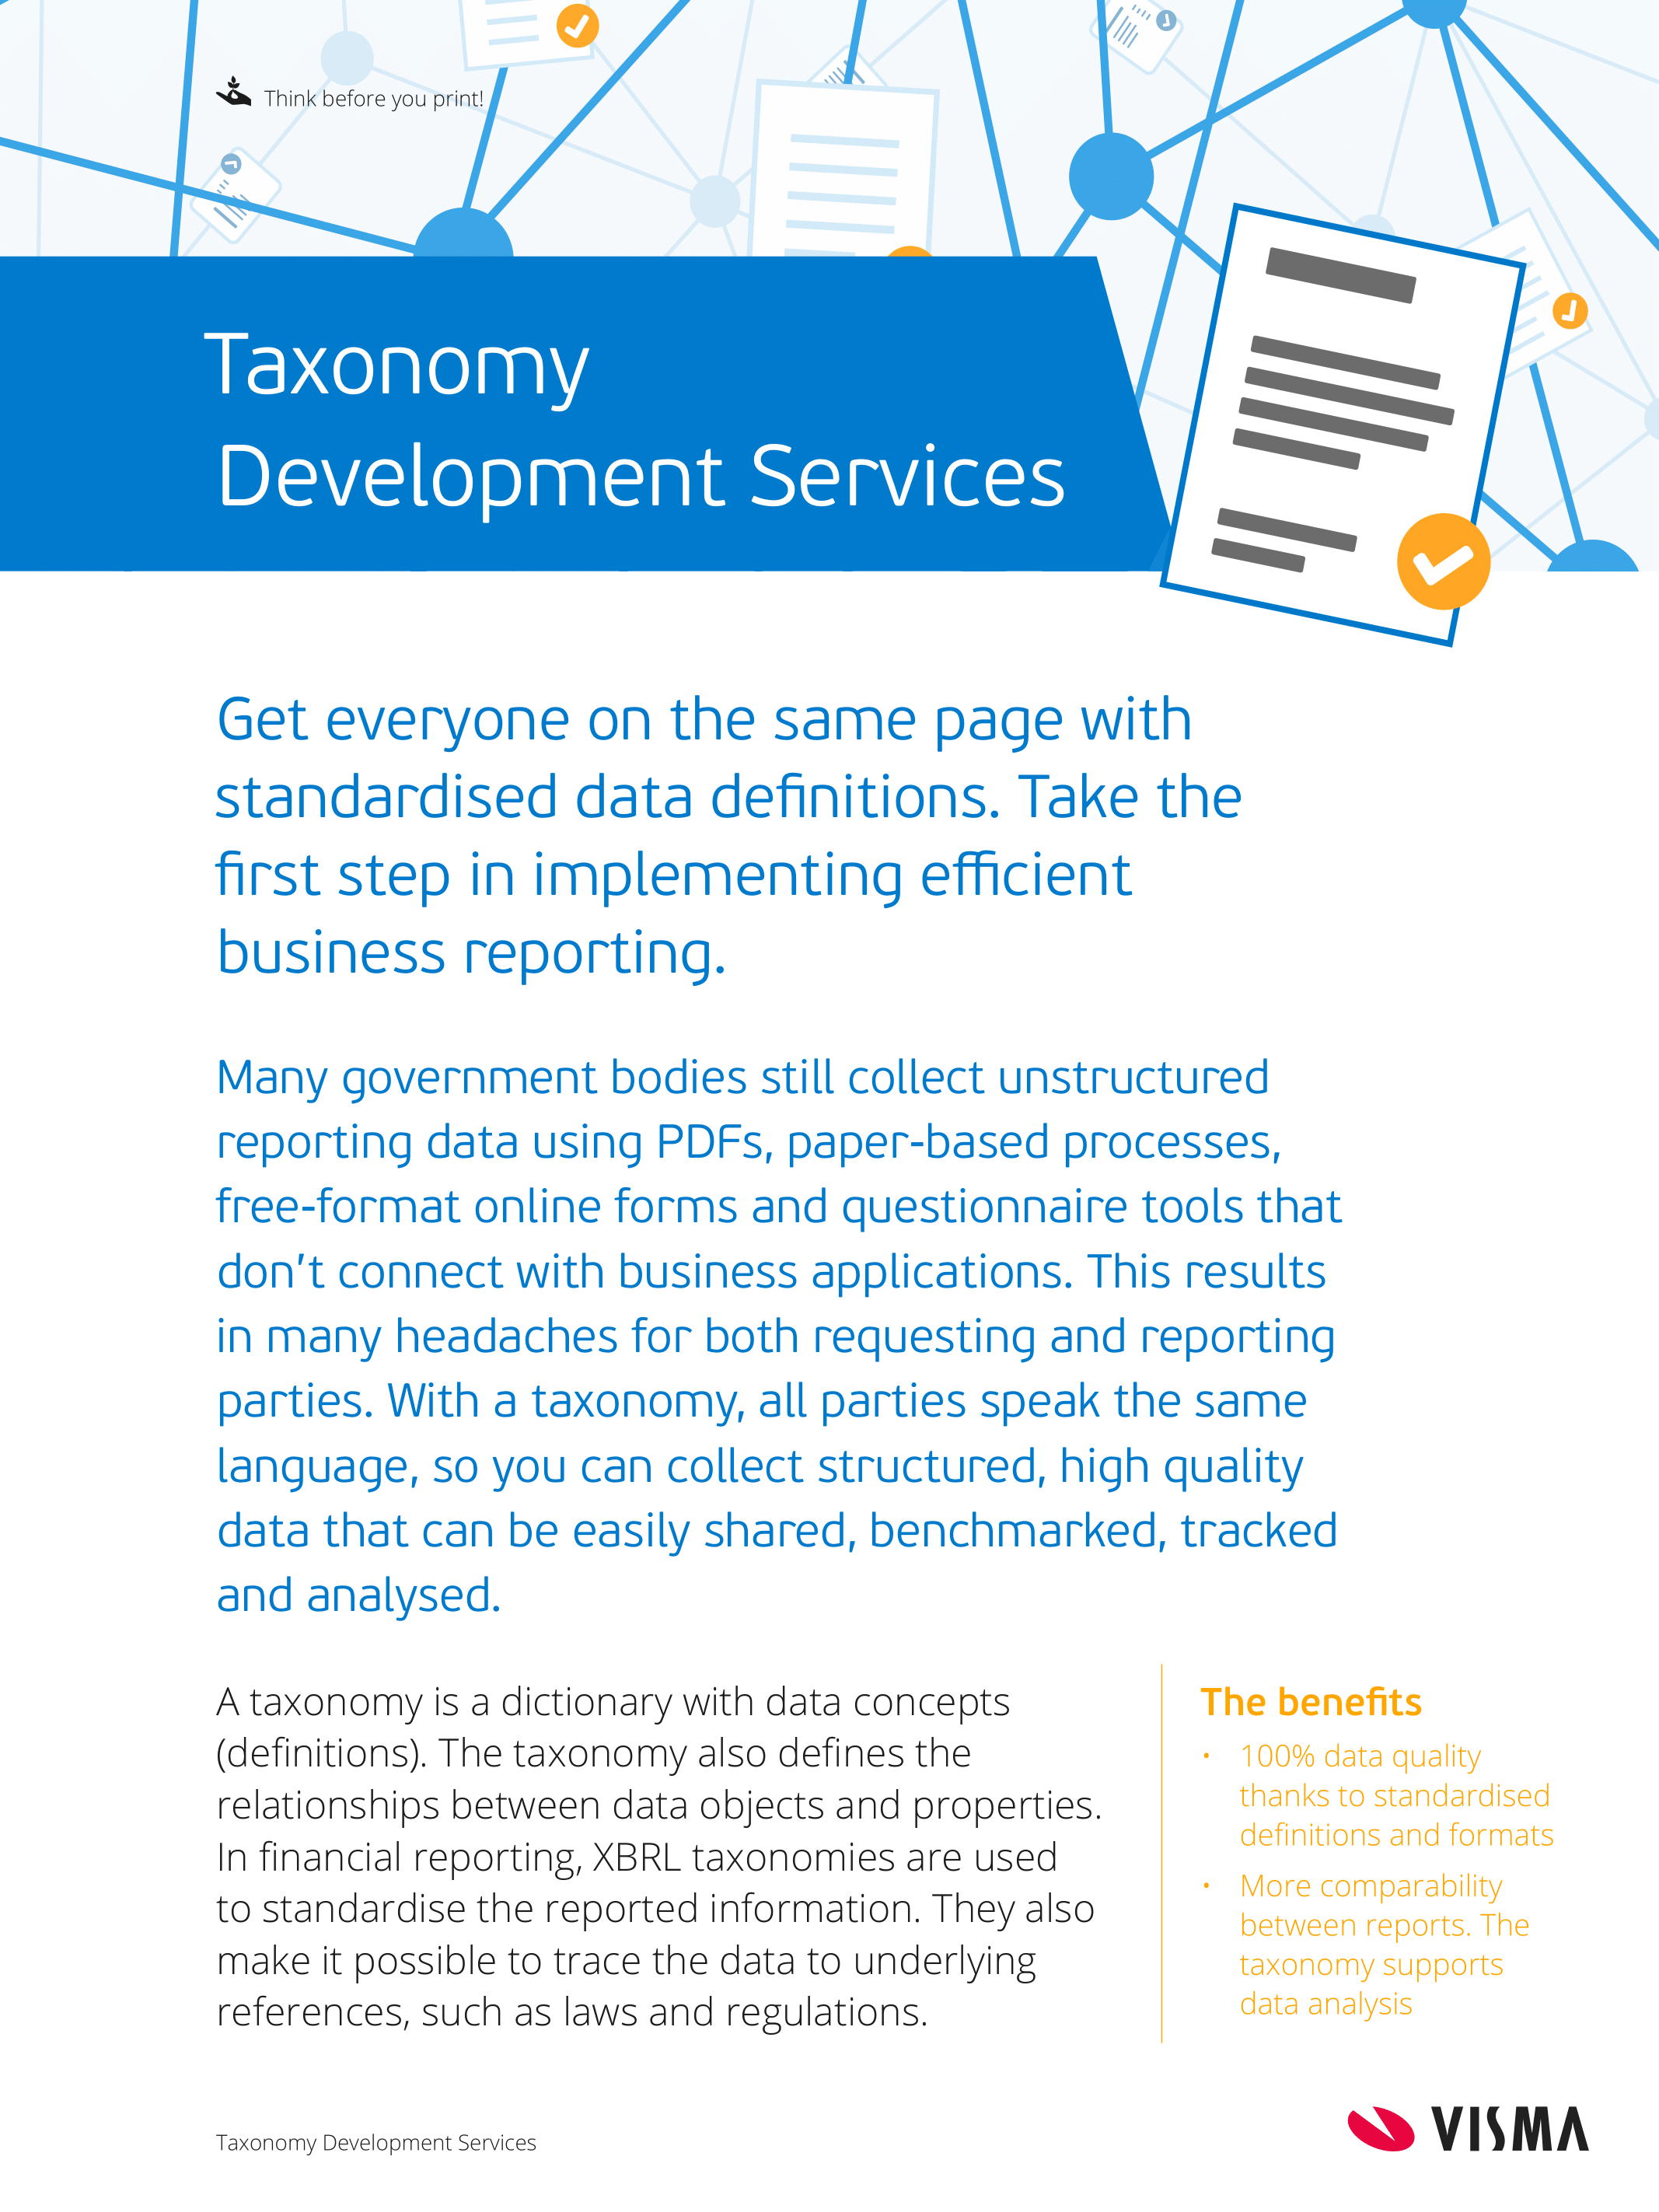 182-012-013 - FS_Taxonomy services_DEF[2]-1-3